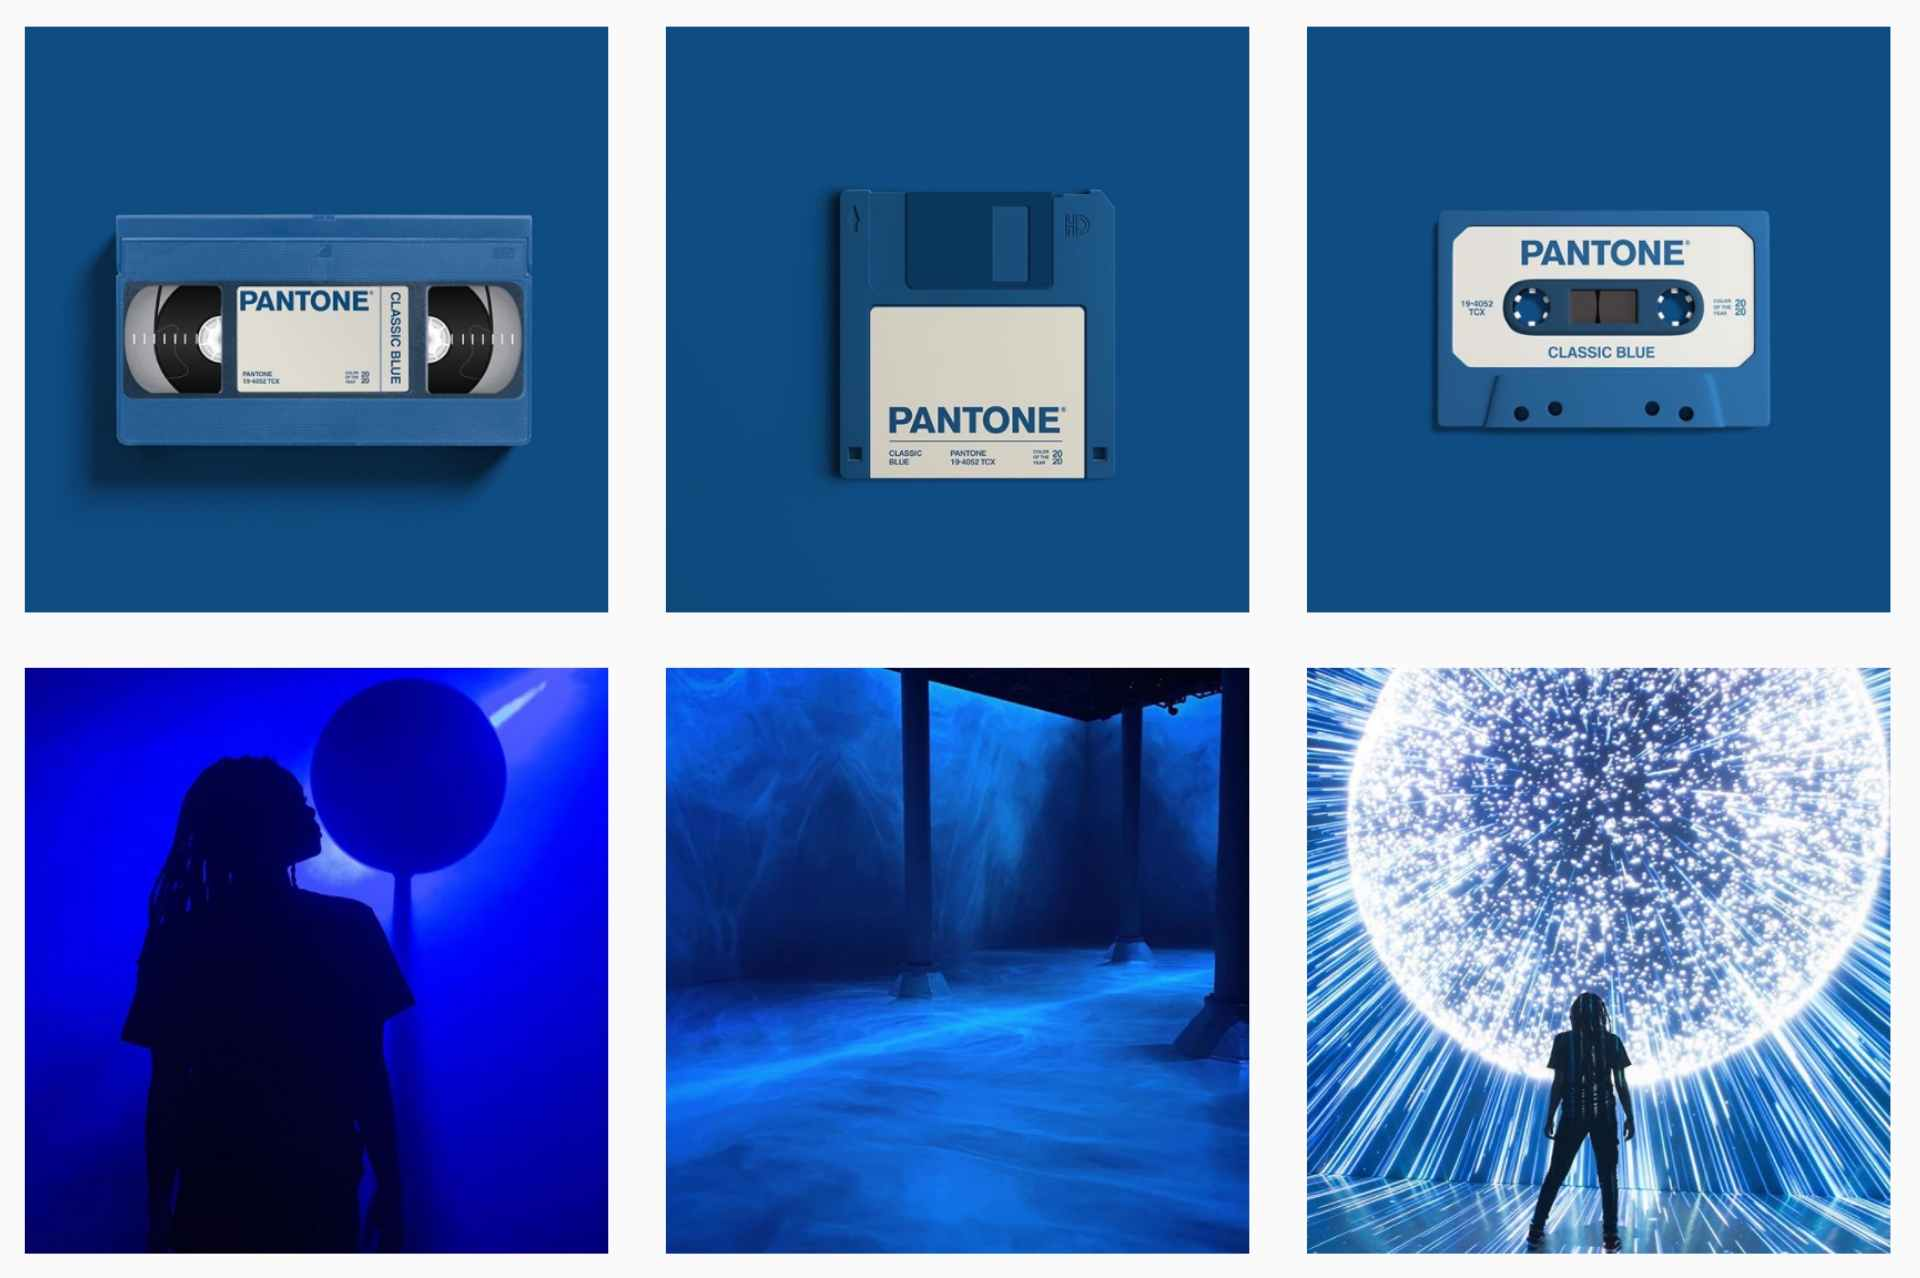 grid with images using pantone blue